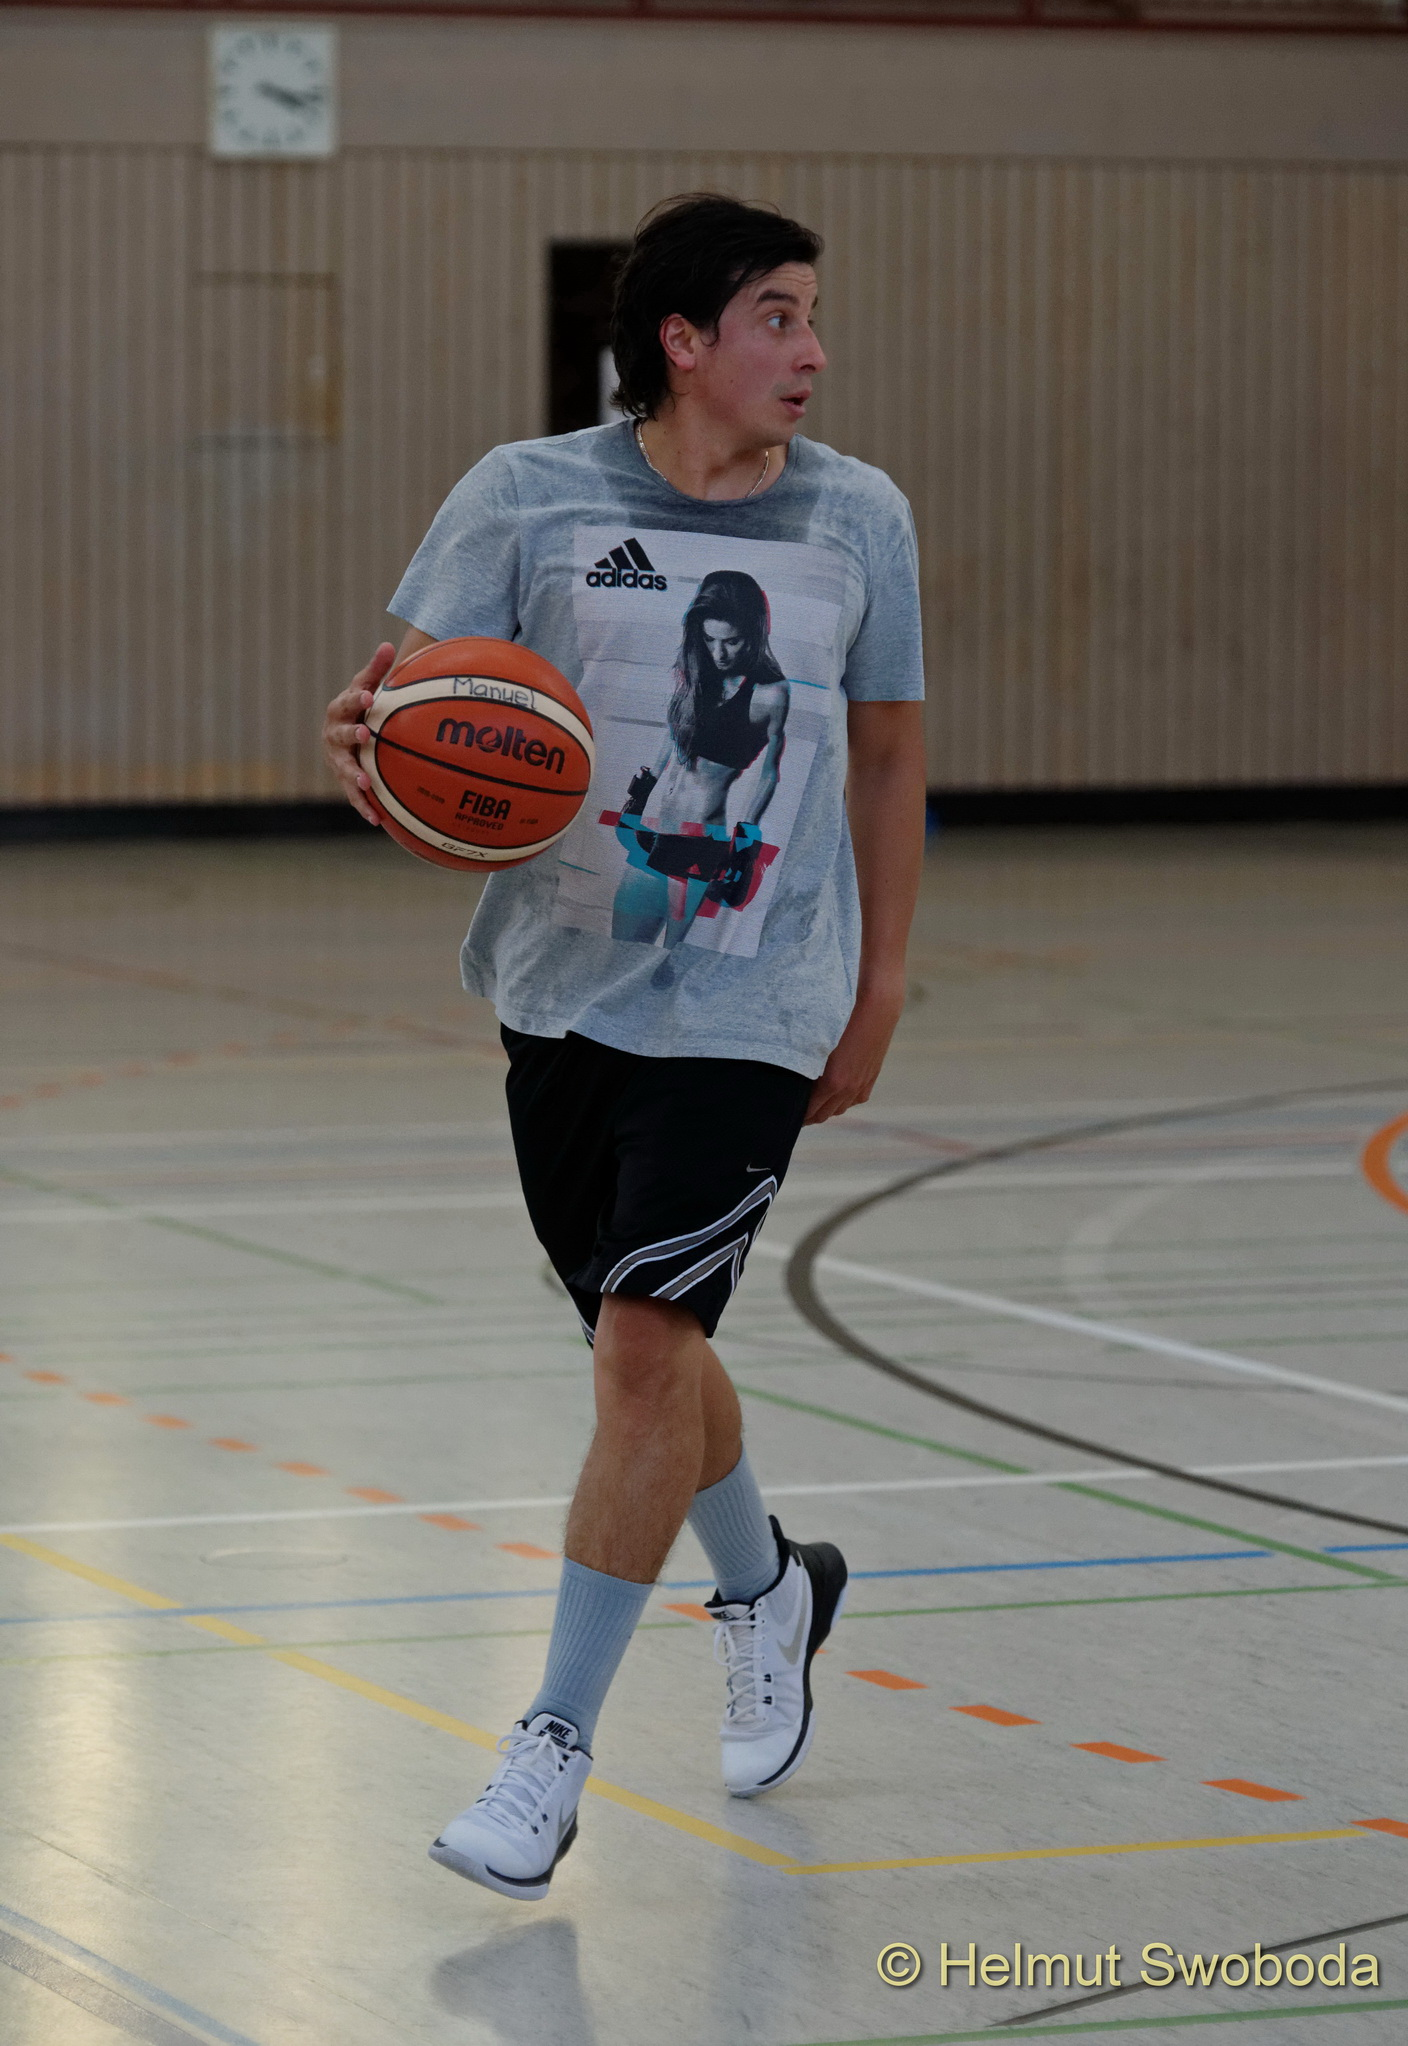 d170402-161656200-100-basketball_weilheim-mixed-turnier_33684159781_o